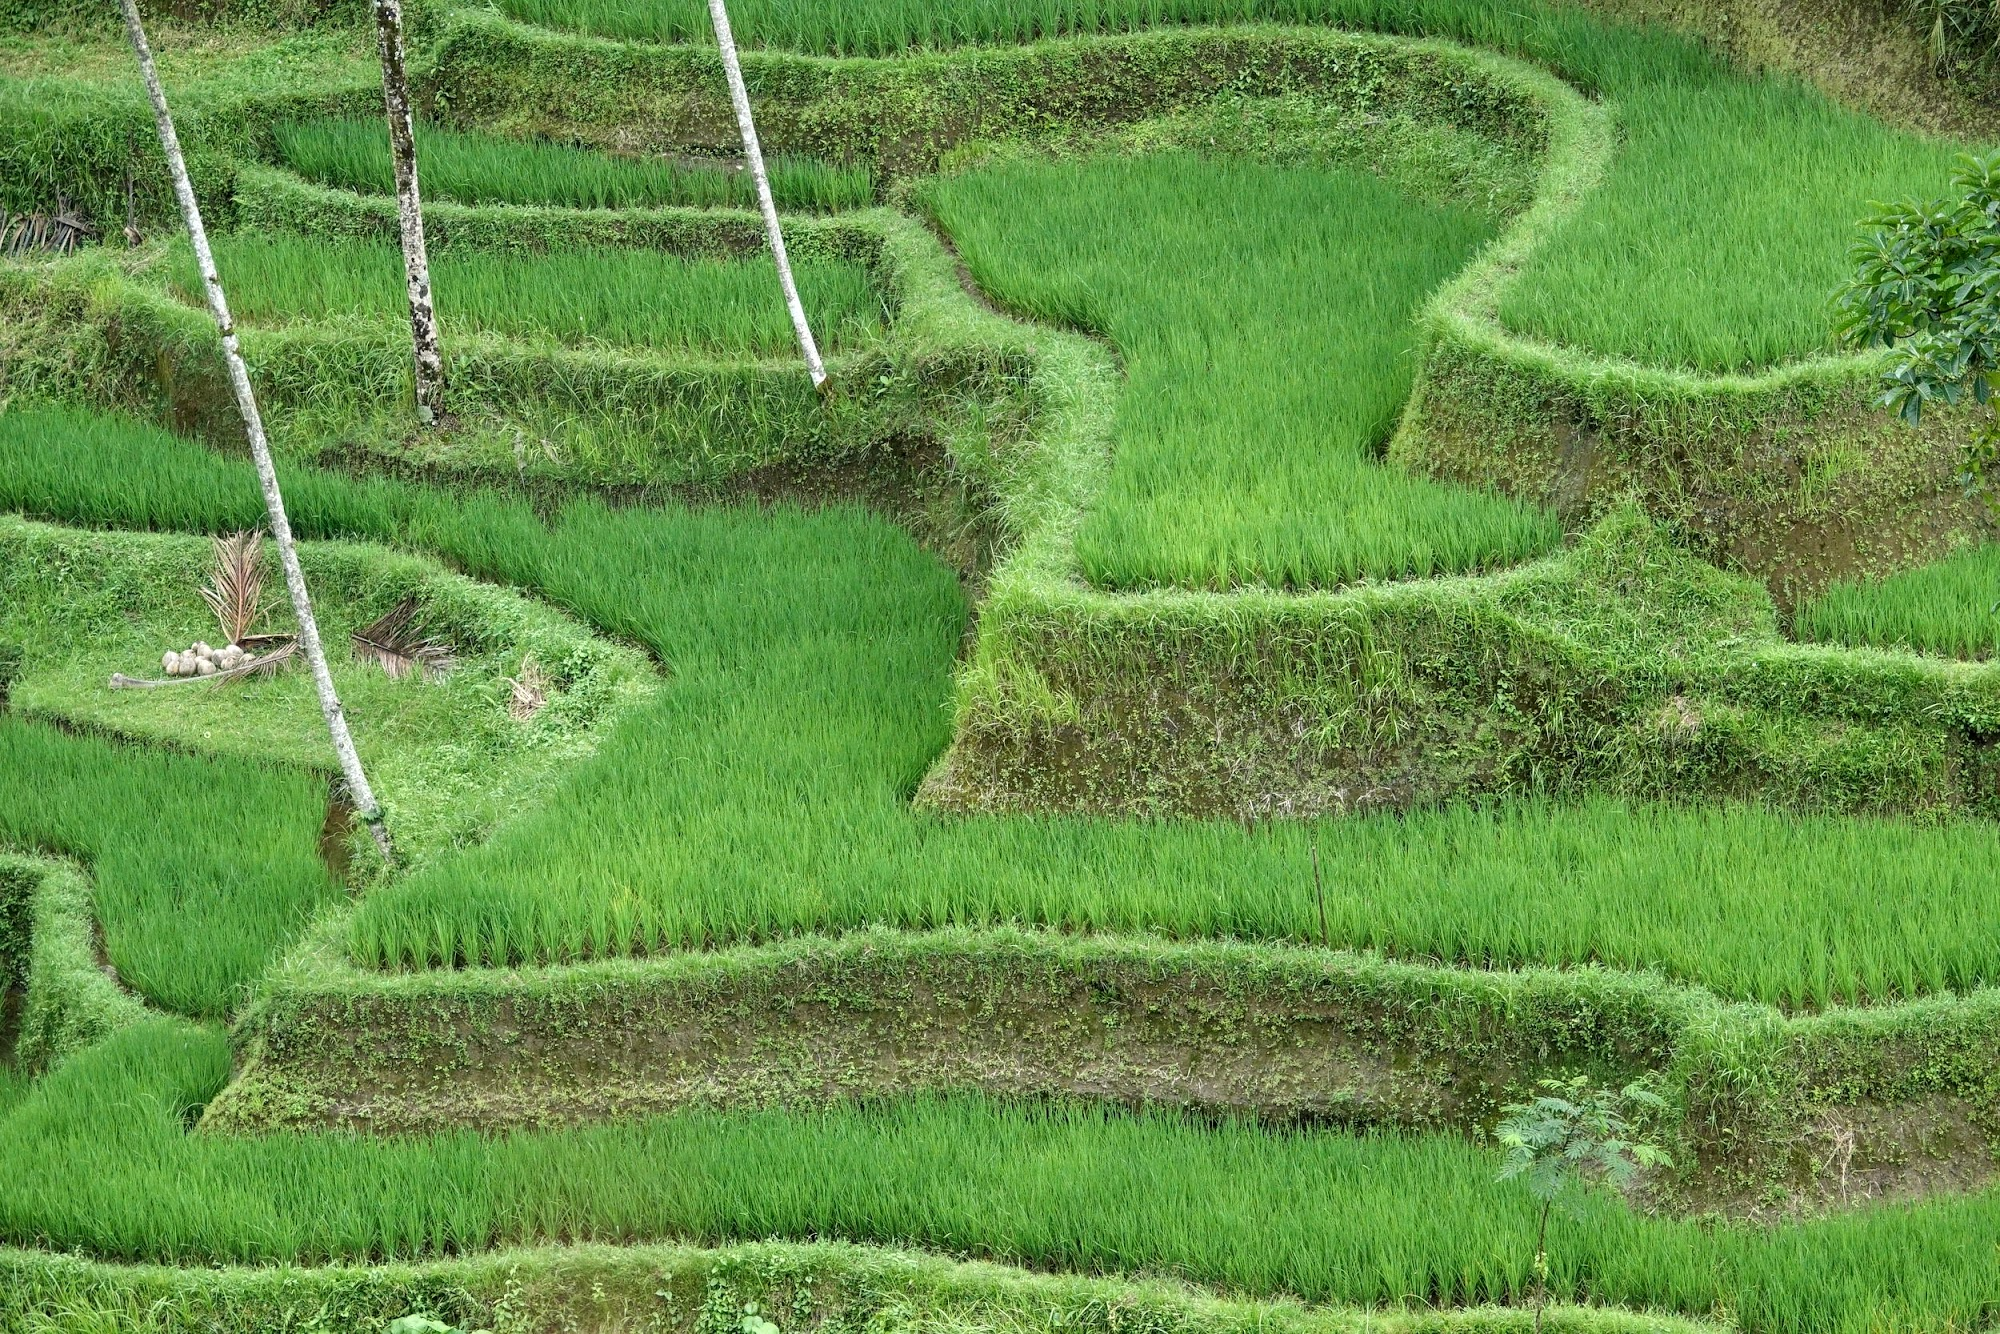 Indonesia. Bali Tegalalang Rice Terraces Banner. One-month old rice growth